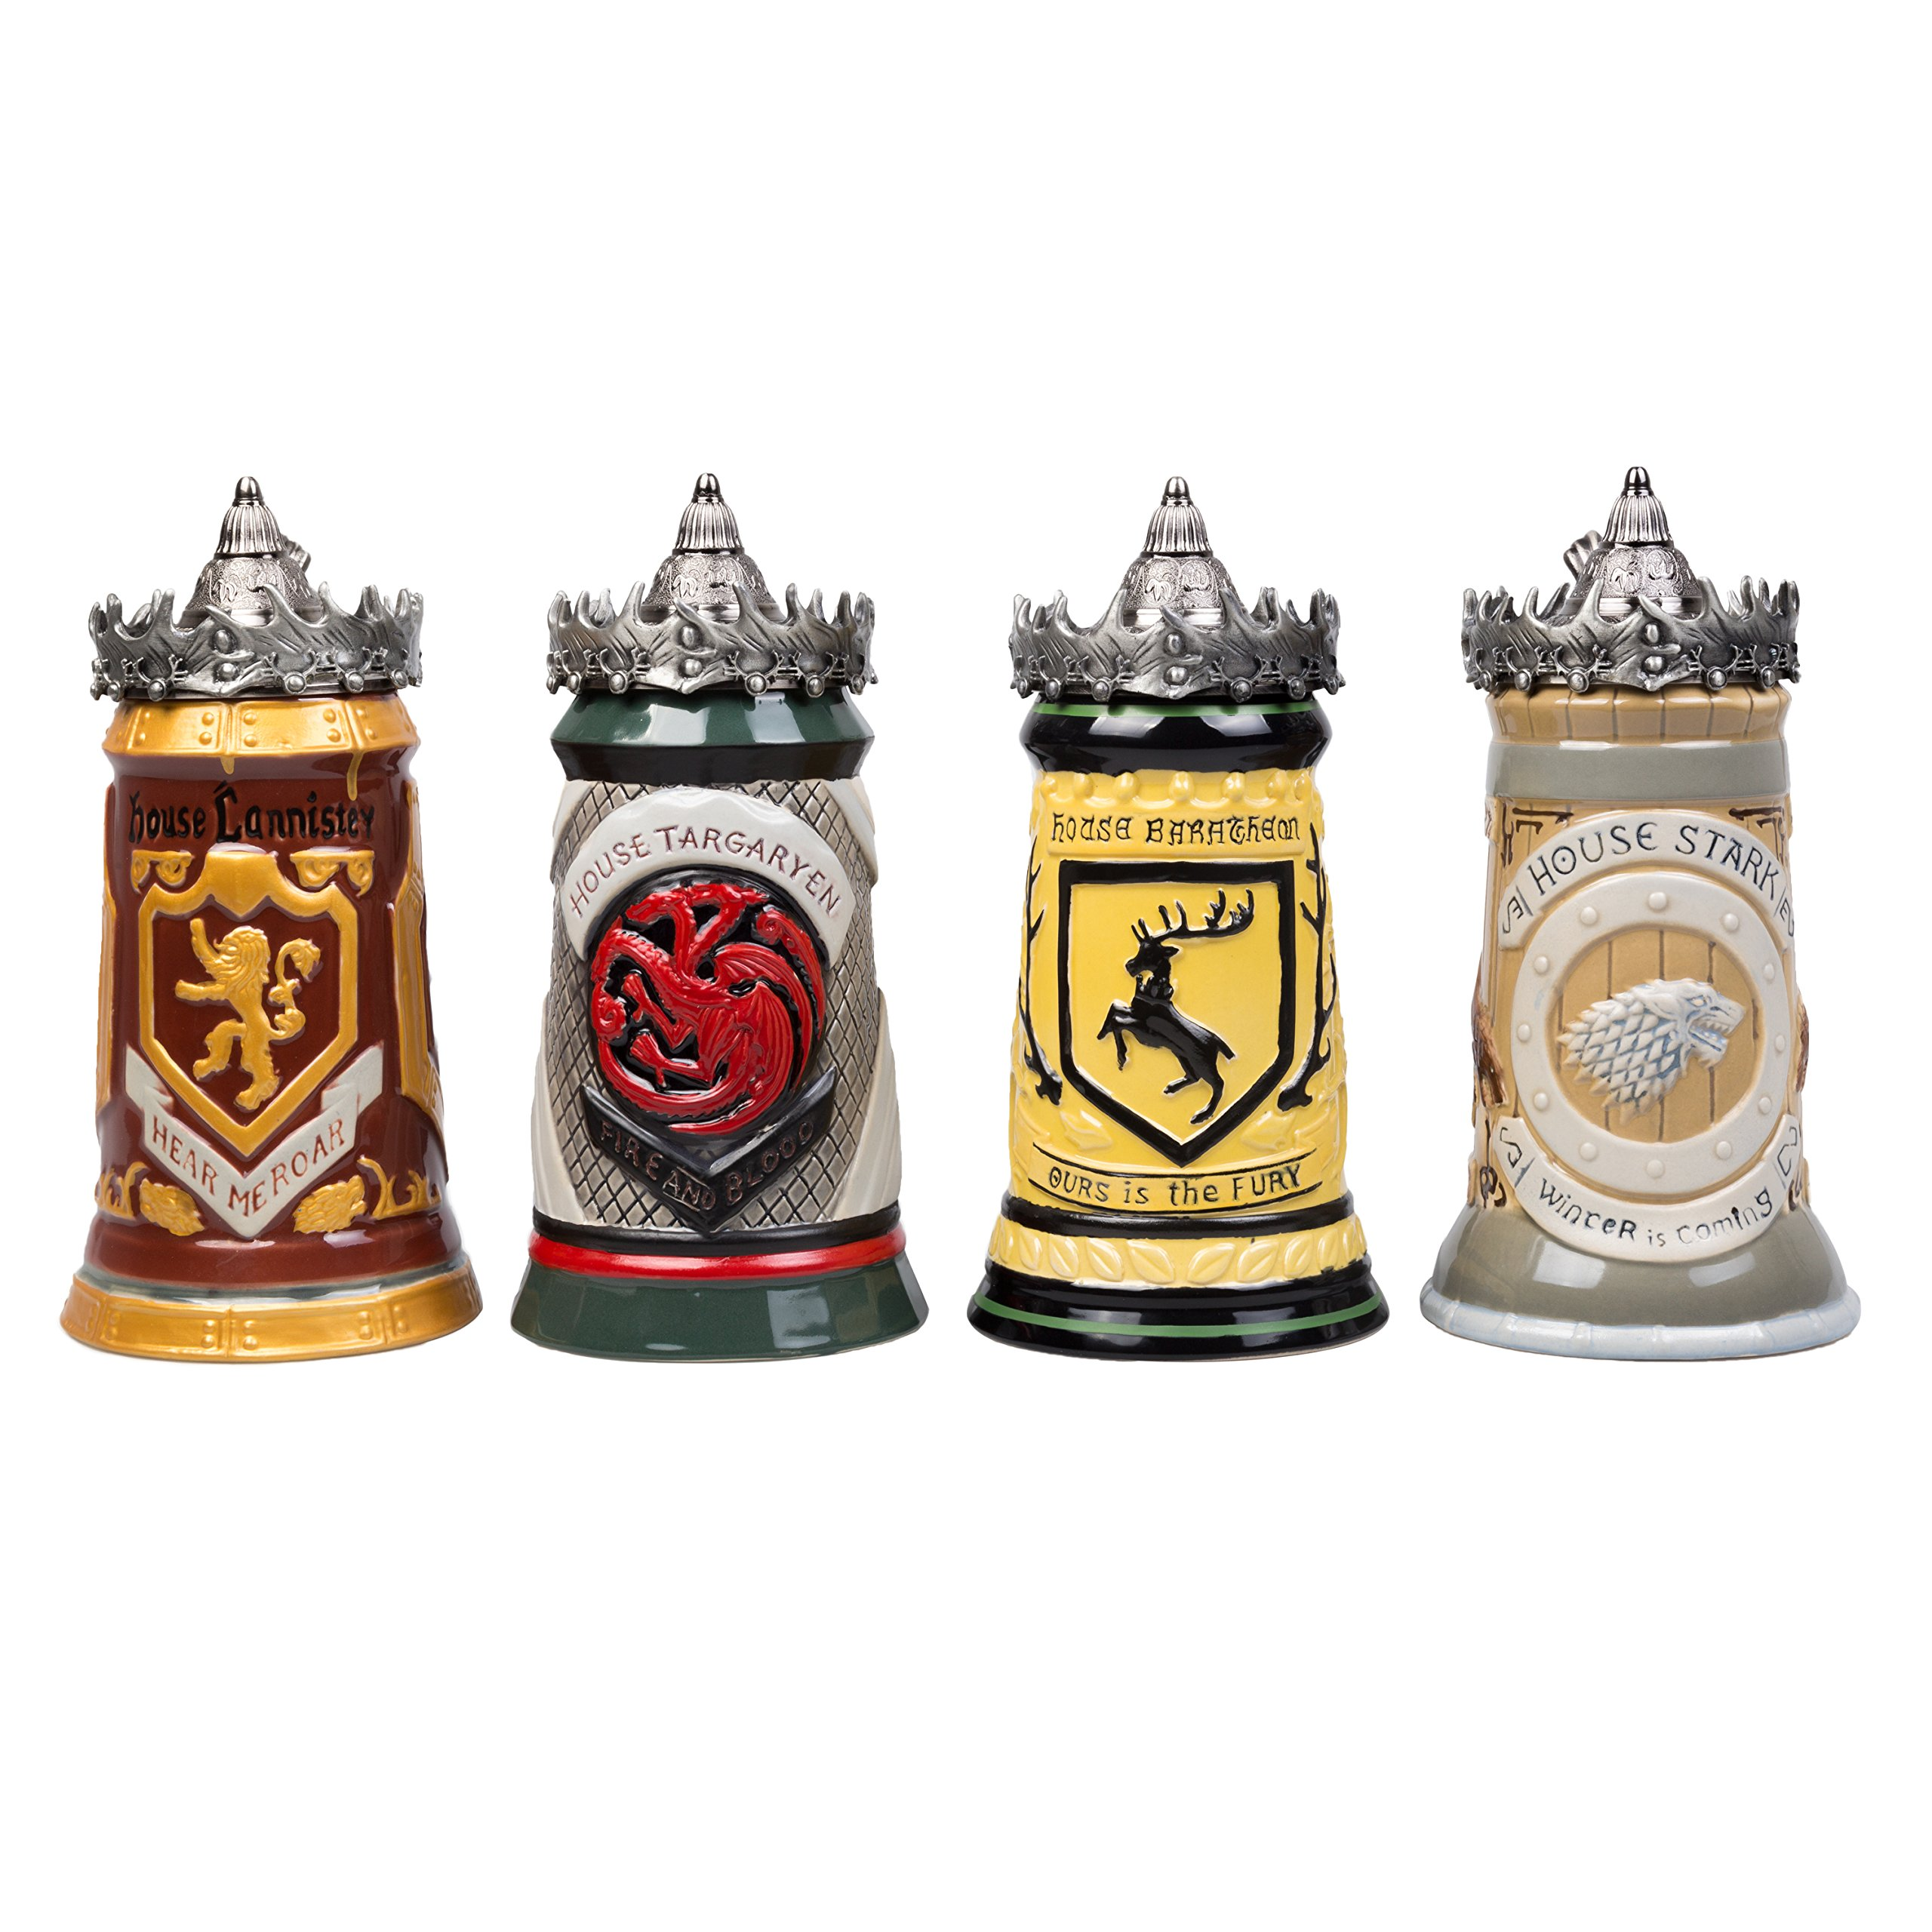 Game of Thrones House Targaryen Stein - 22 Oz Ceramic Base with Pewter Baratheon Crown Top by Game of Thrones (Image #9)